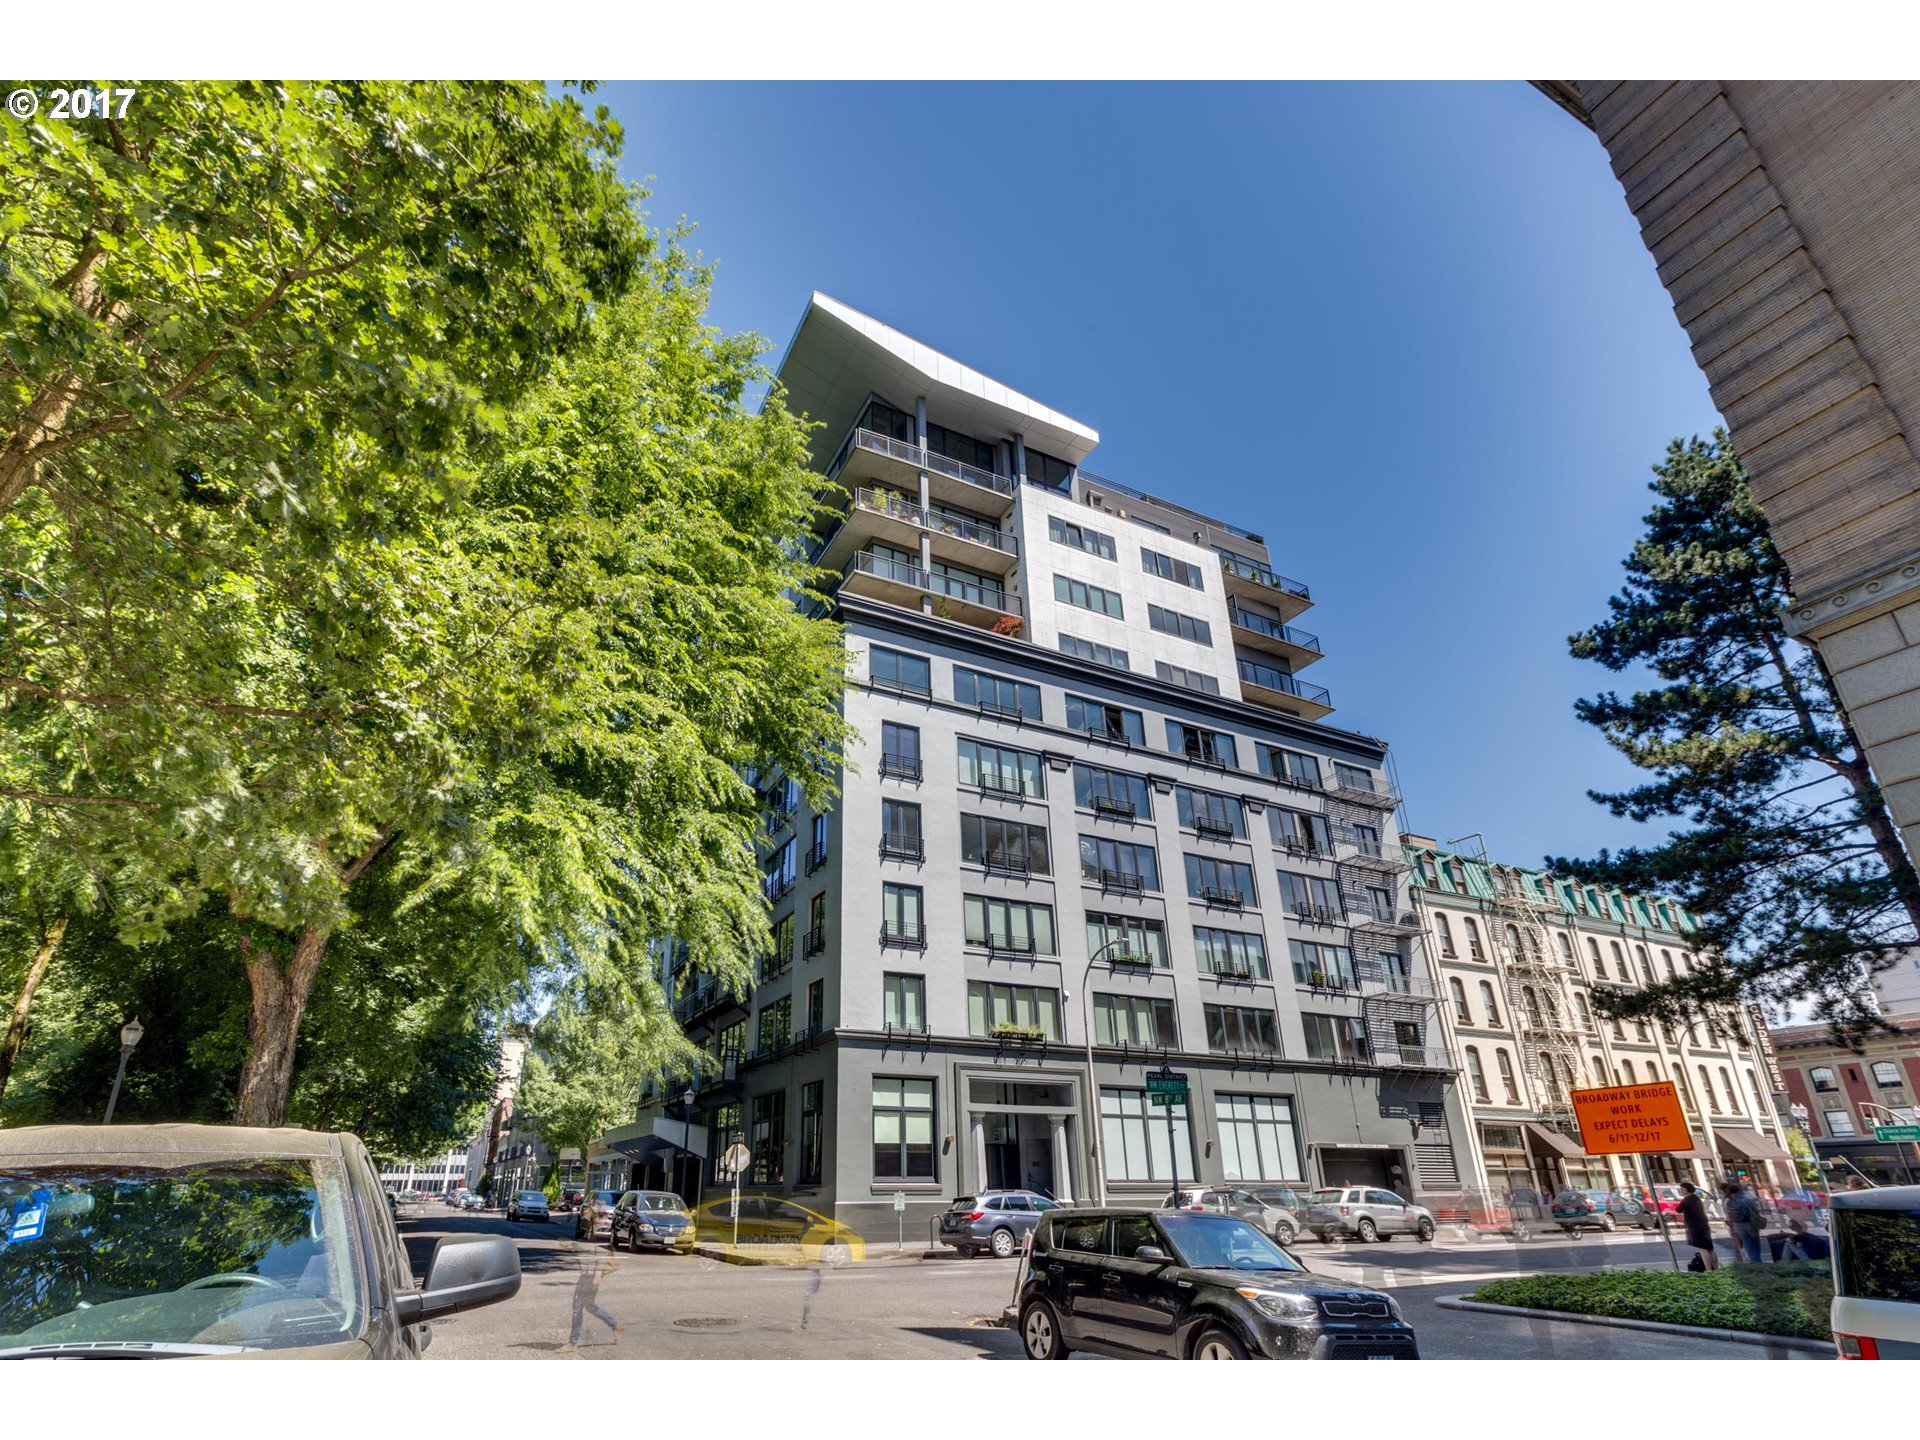 300 NW 8TH AVE #504, Portland, OR 97209